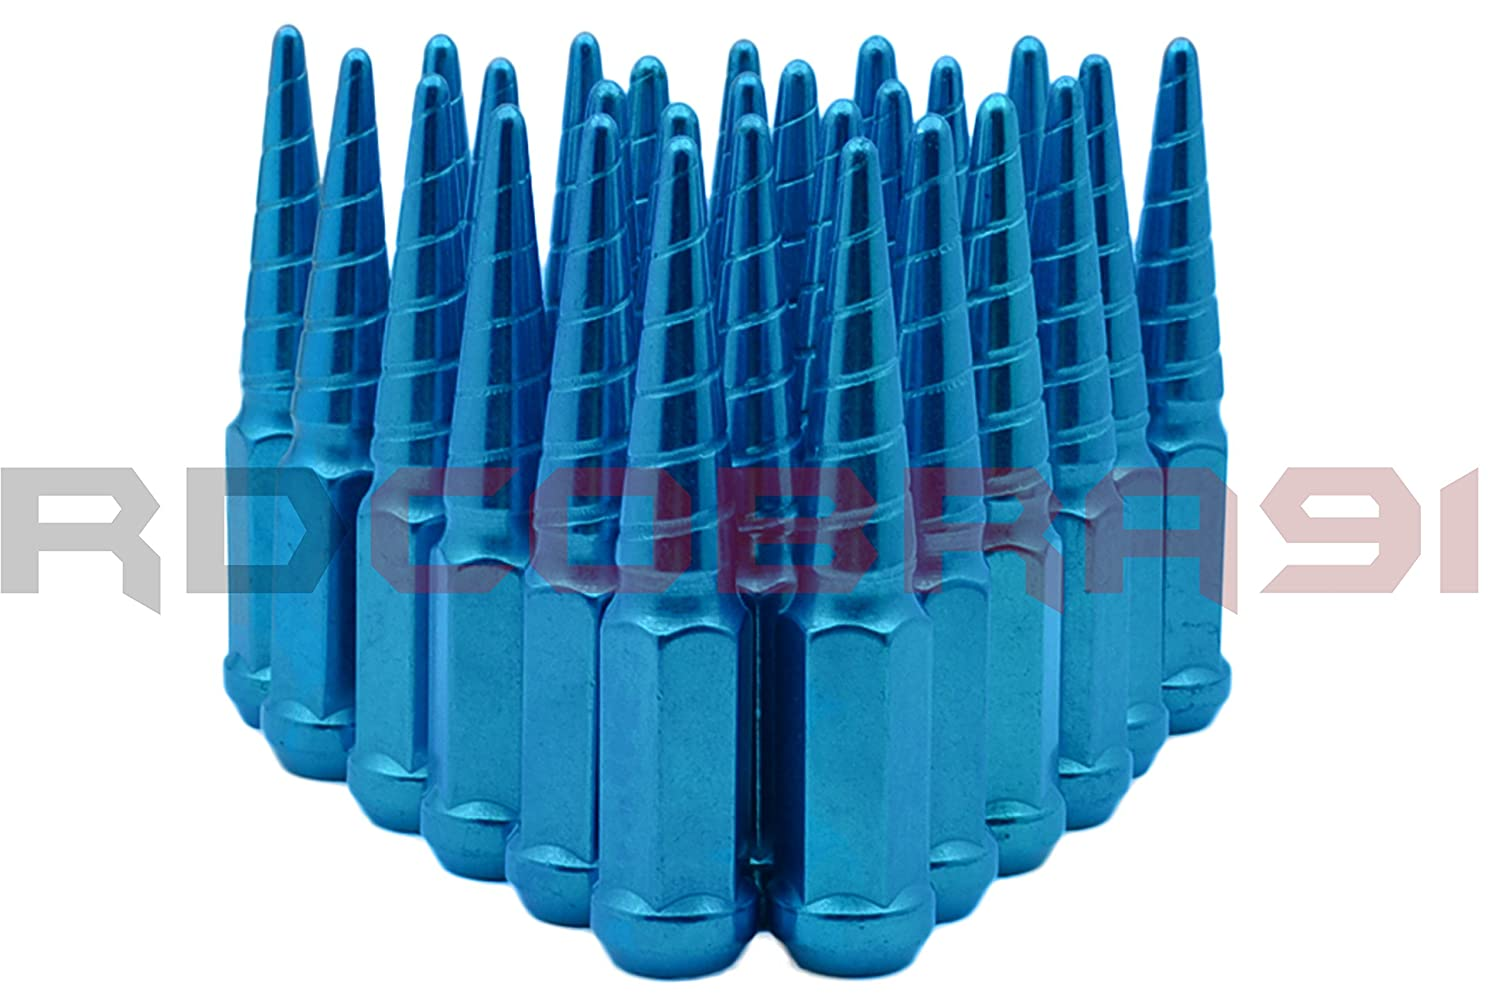 RdCobra91 32pc Twisted Metal Blue Spike Lug Nuts1 Piece Construction M14x1.5 Fits 1999-2016 8 Lug Ford 8x170 F-250 /& F-350 Supert Duty Crew Cab All Models